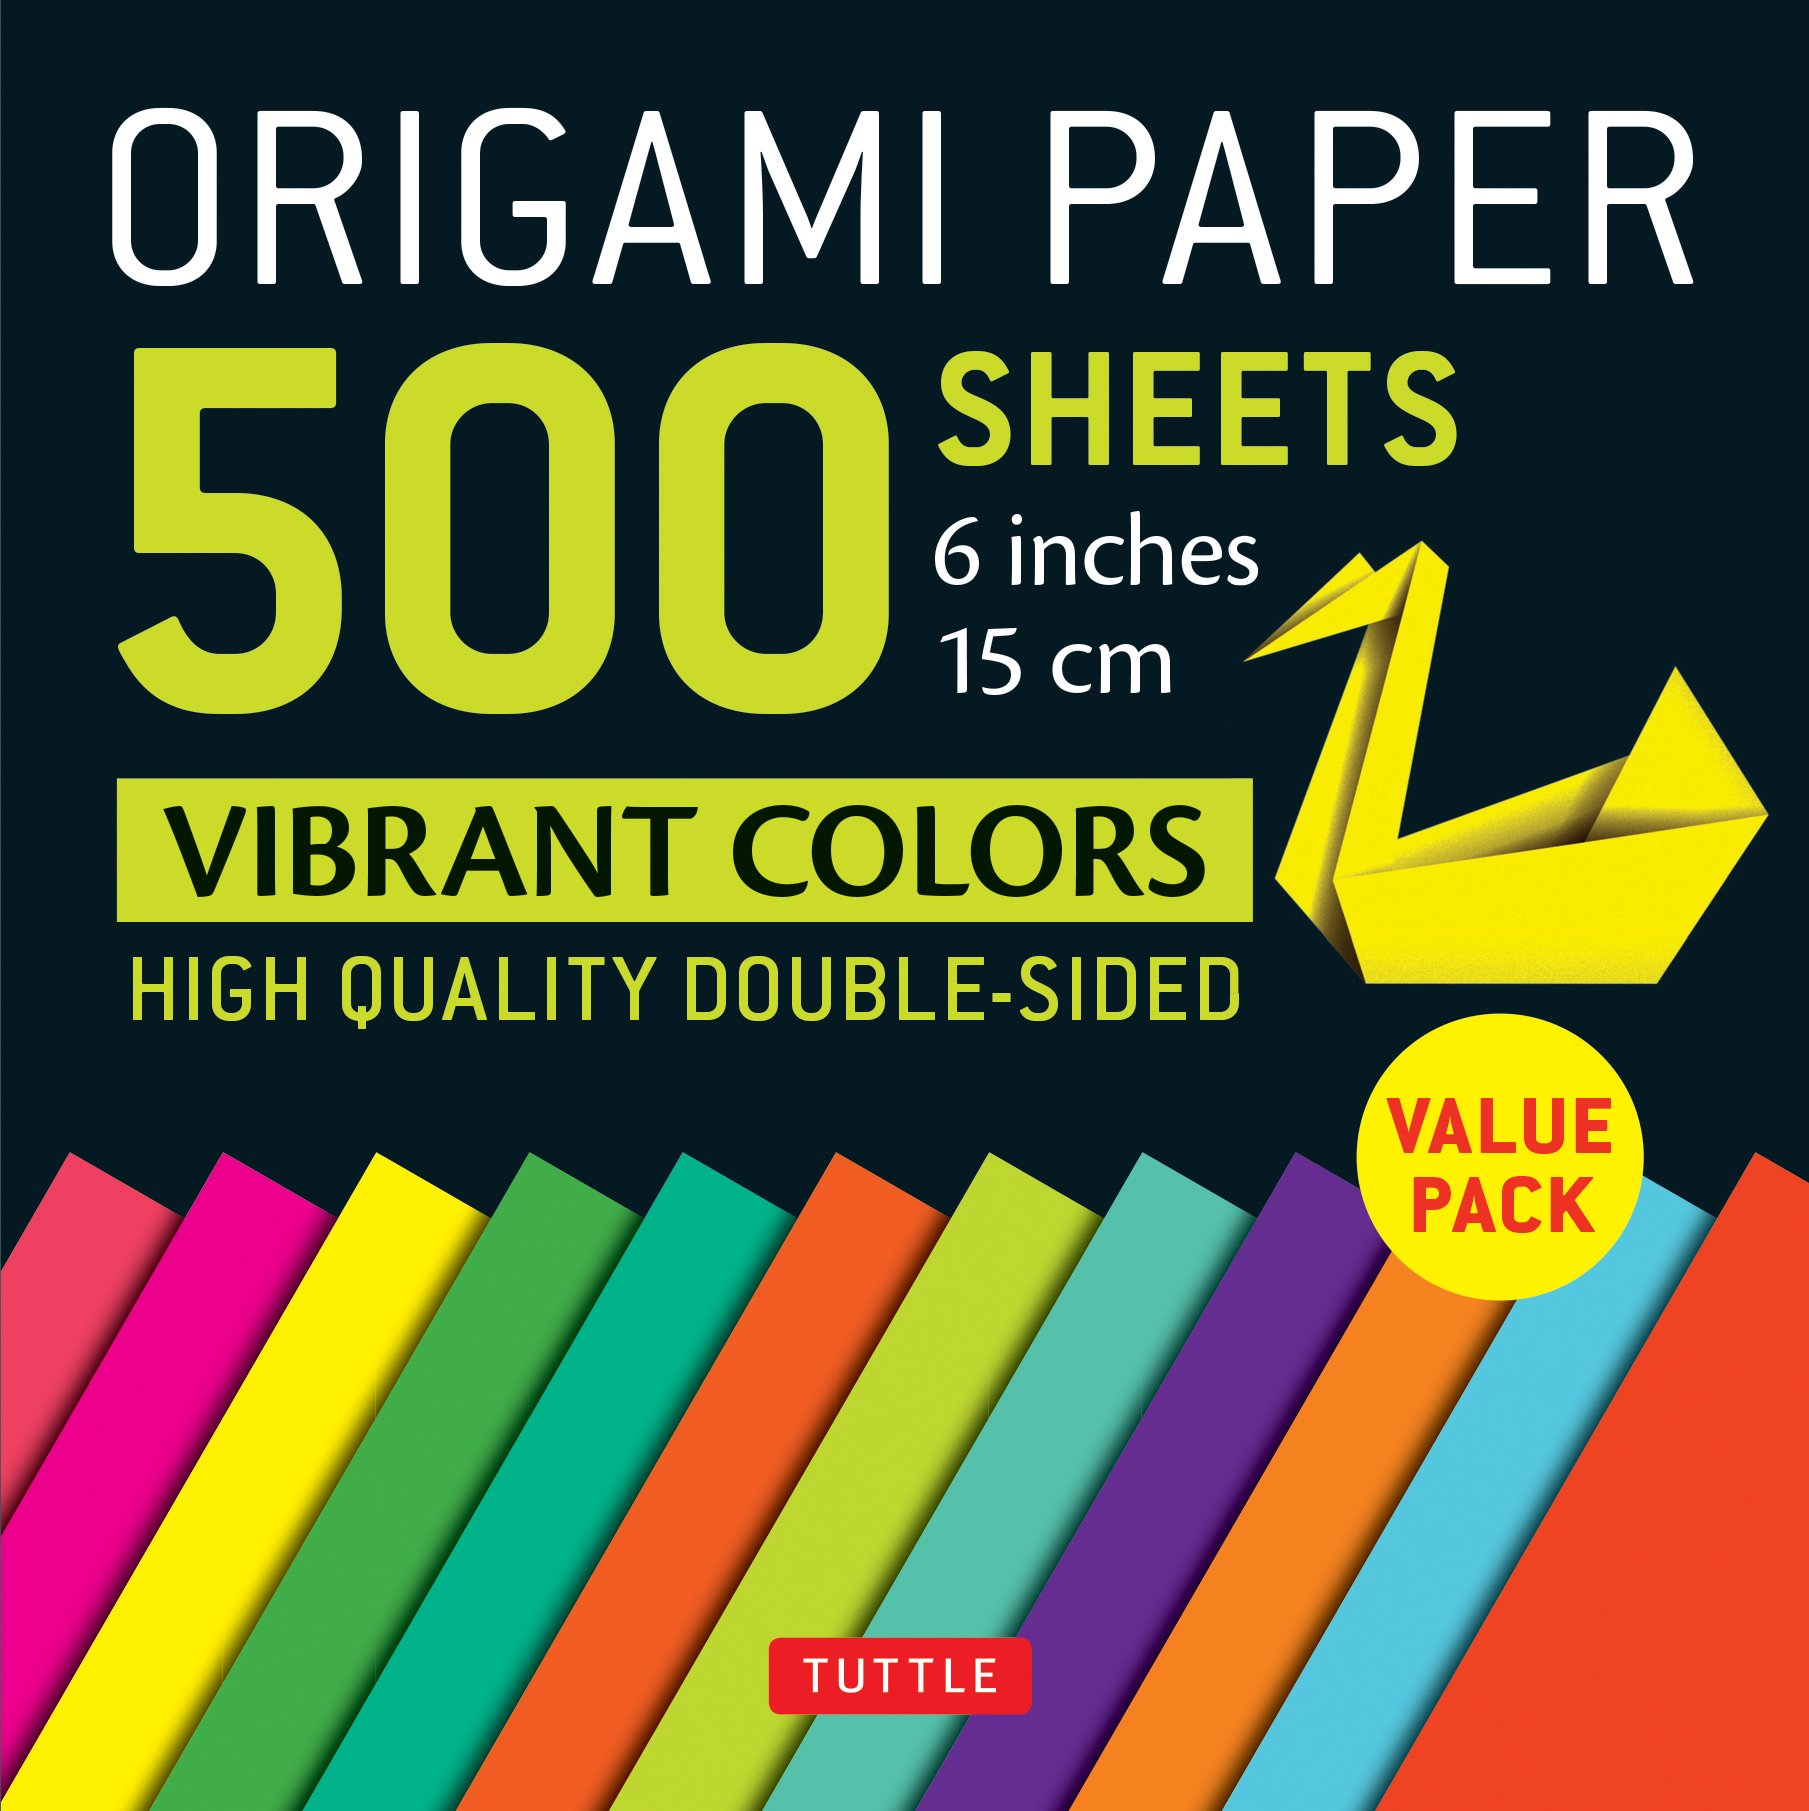 Origami Paper 500 Sheets